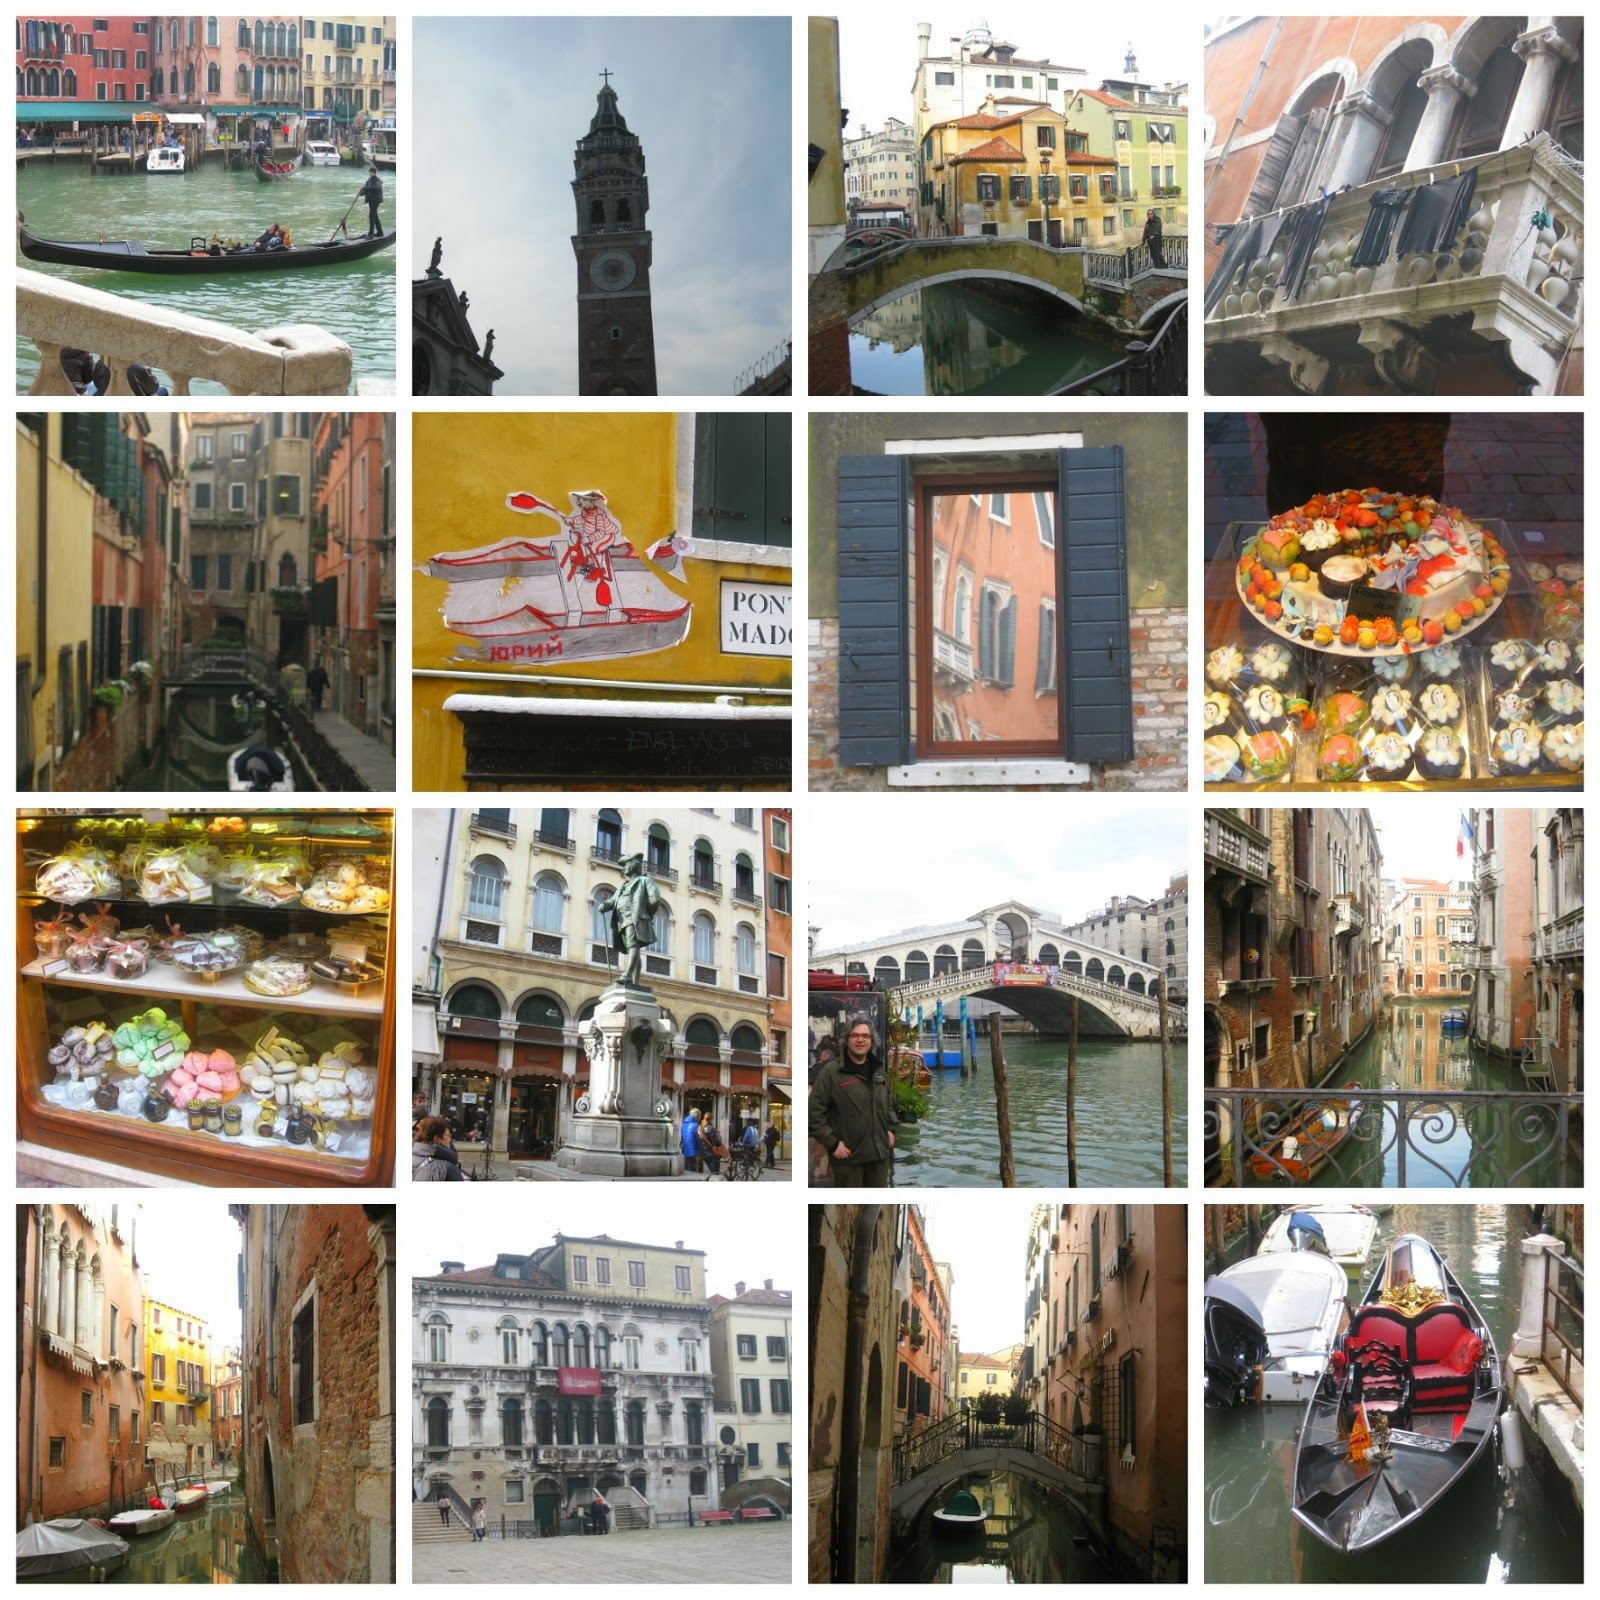 venice italy honeymoon gondola gondolas bridge of sighs rialto bridge carnival